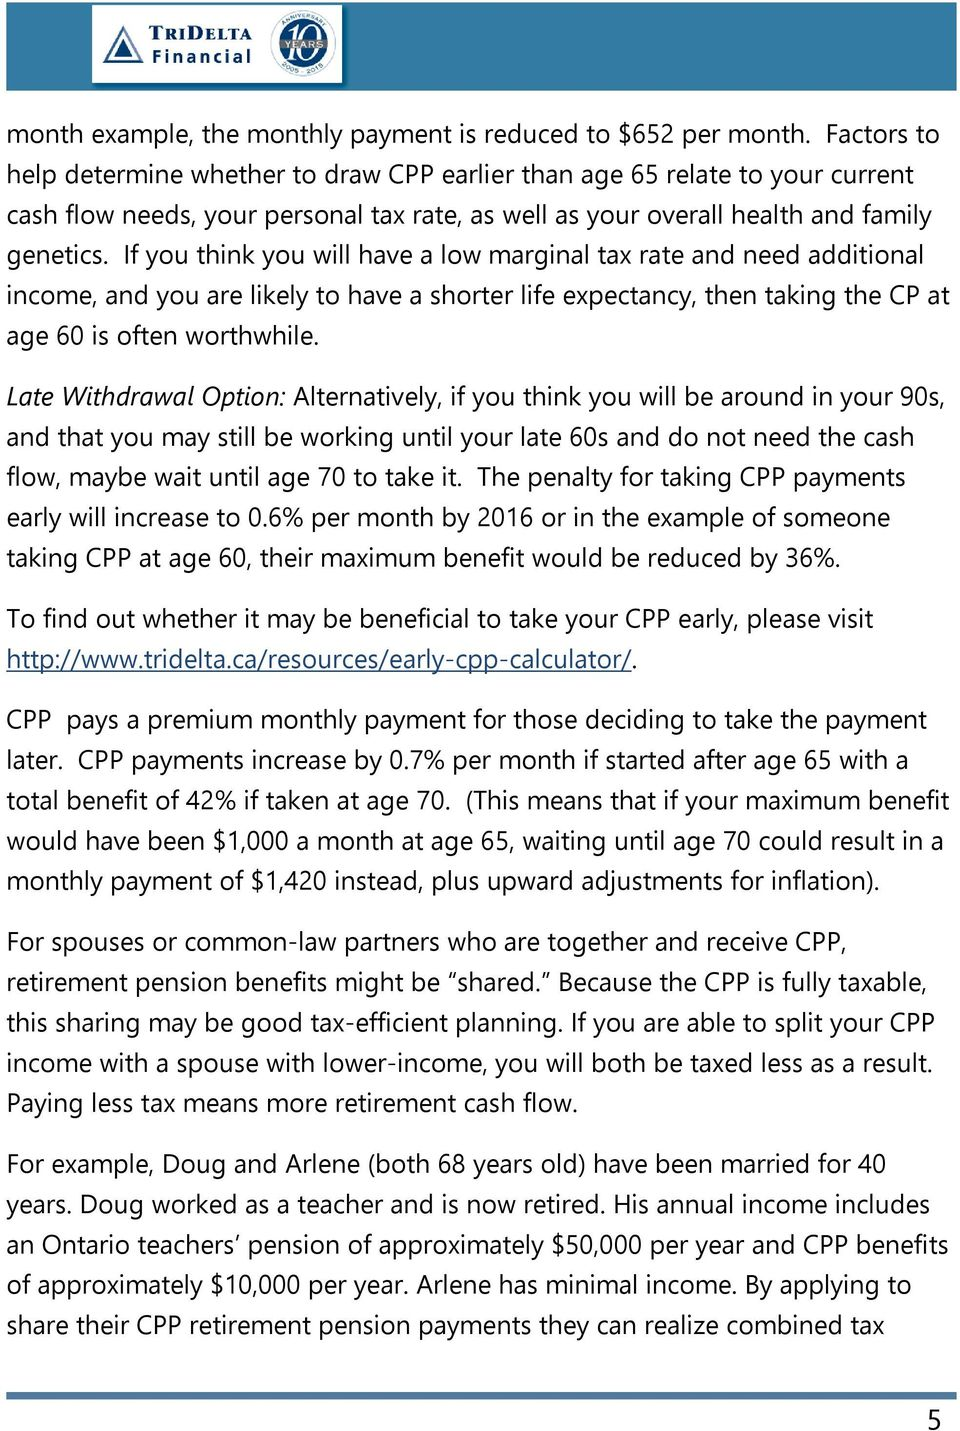 If you think you will have a low marginal tax rate and need additional income, and you are likely to have a shorter life expectancy, then taking the CP at age 60 is often worthwhile.